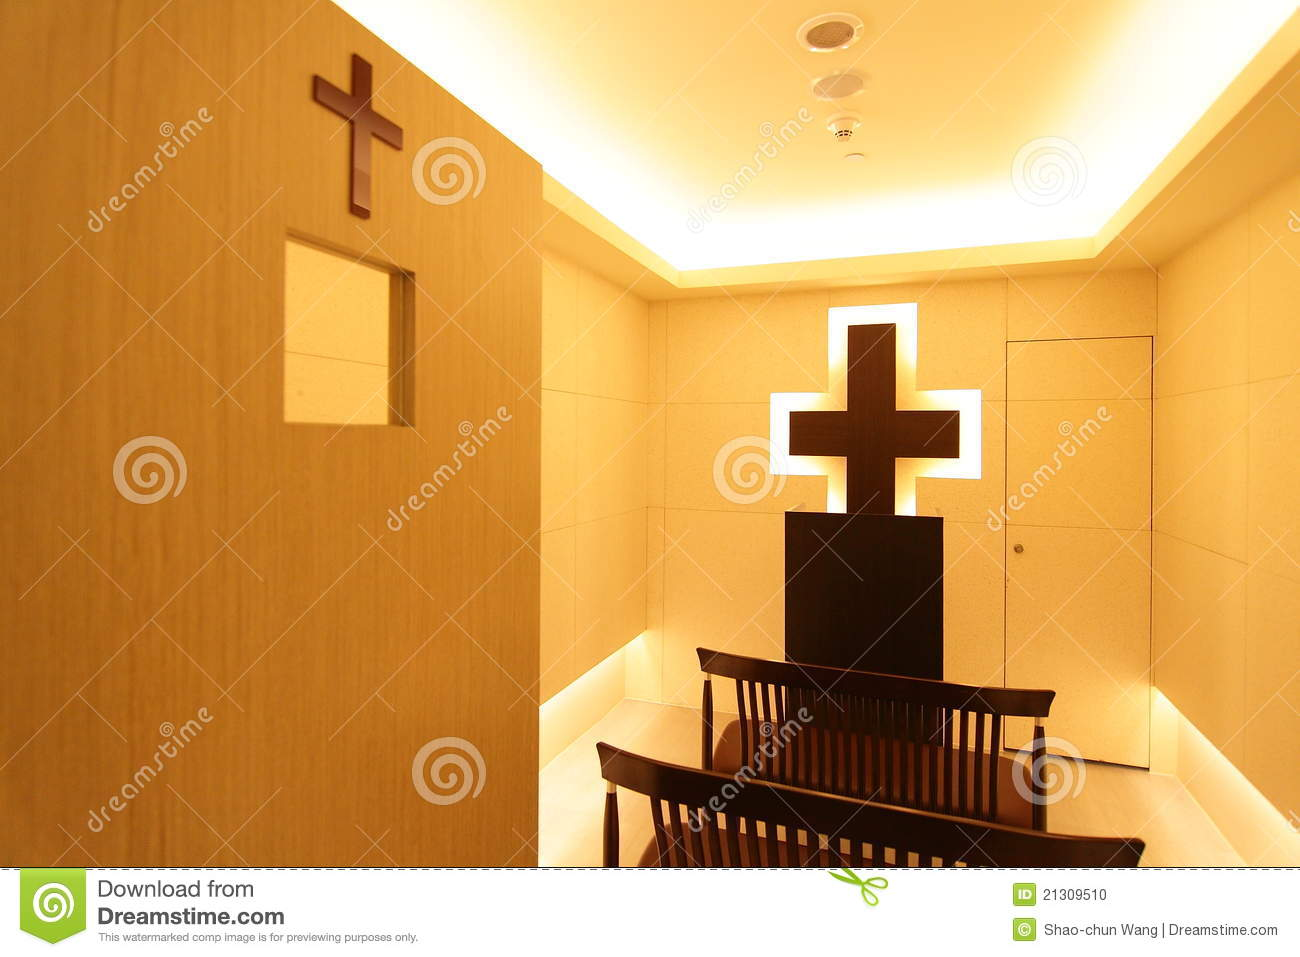 A Christian Prayer Room Stock Photo Image Of Peaceful